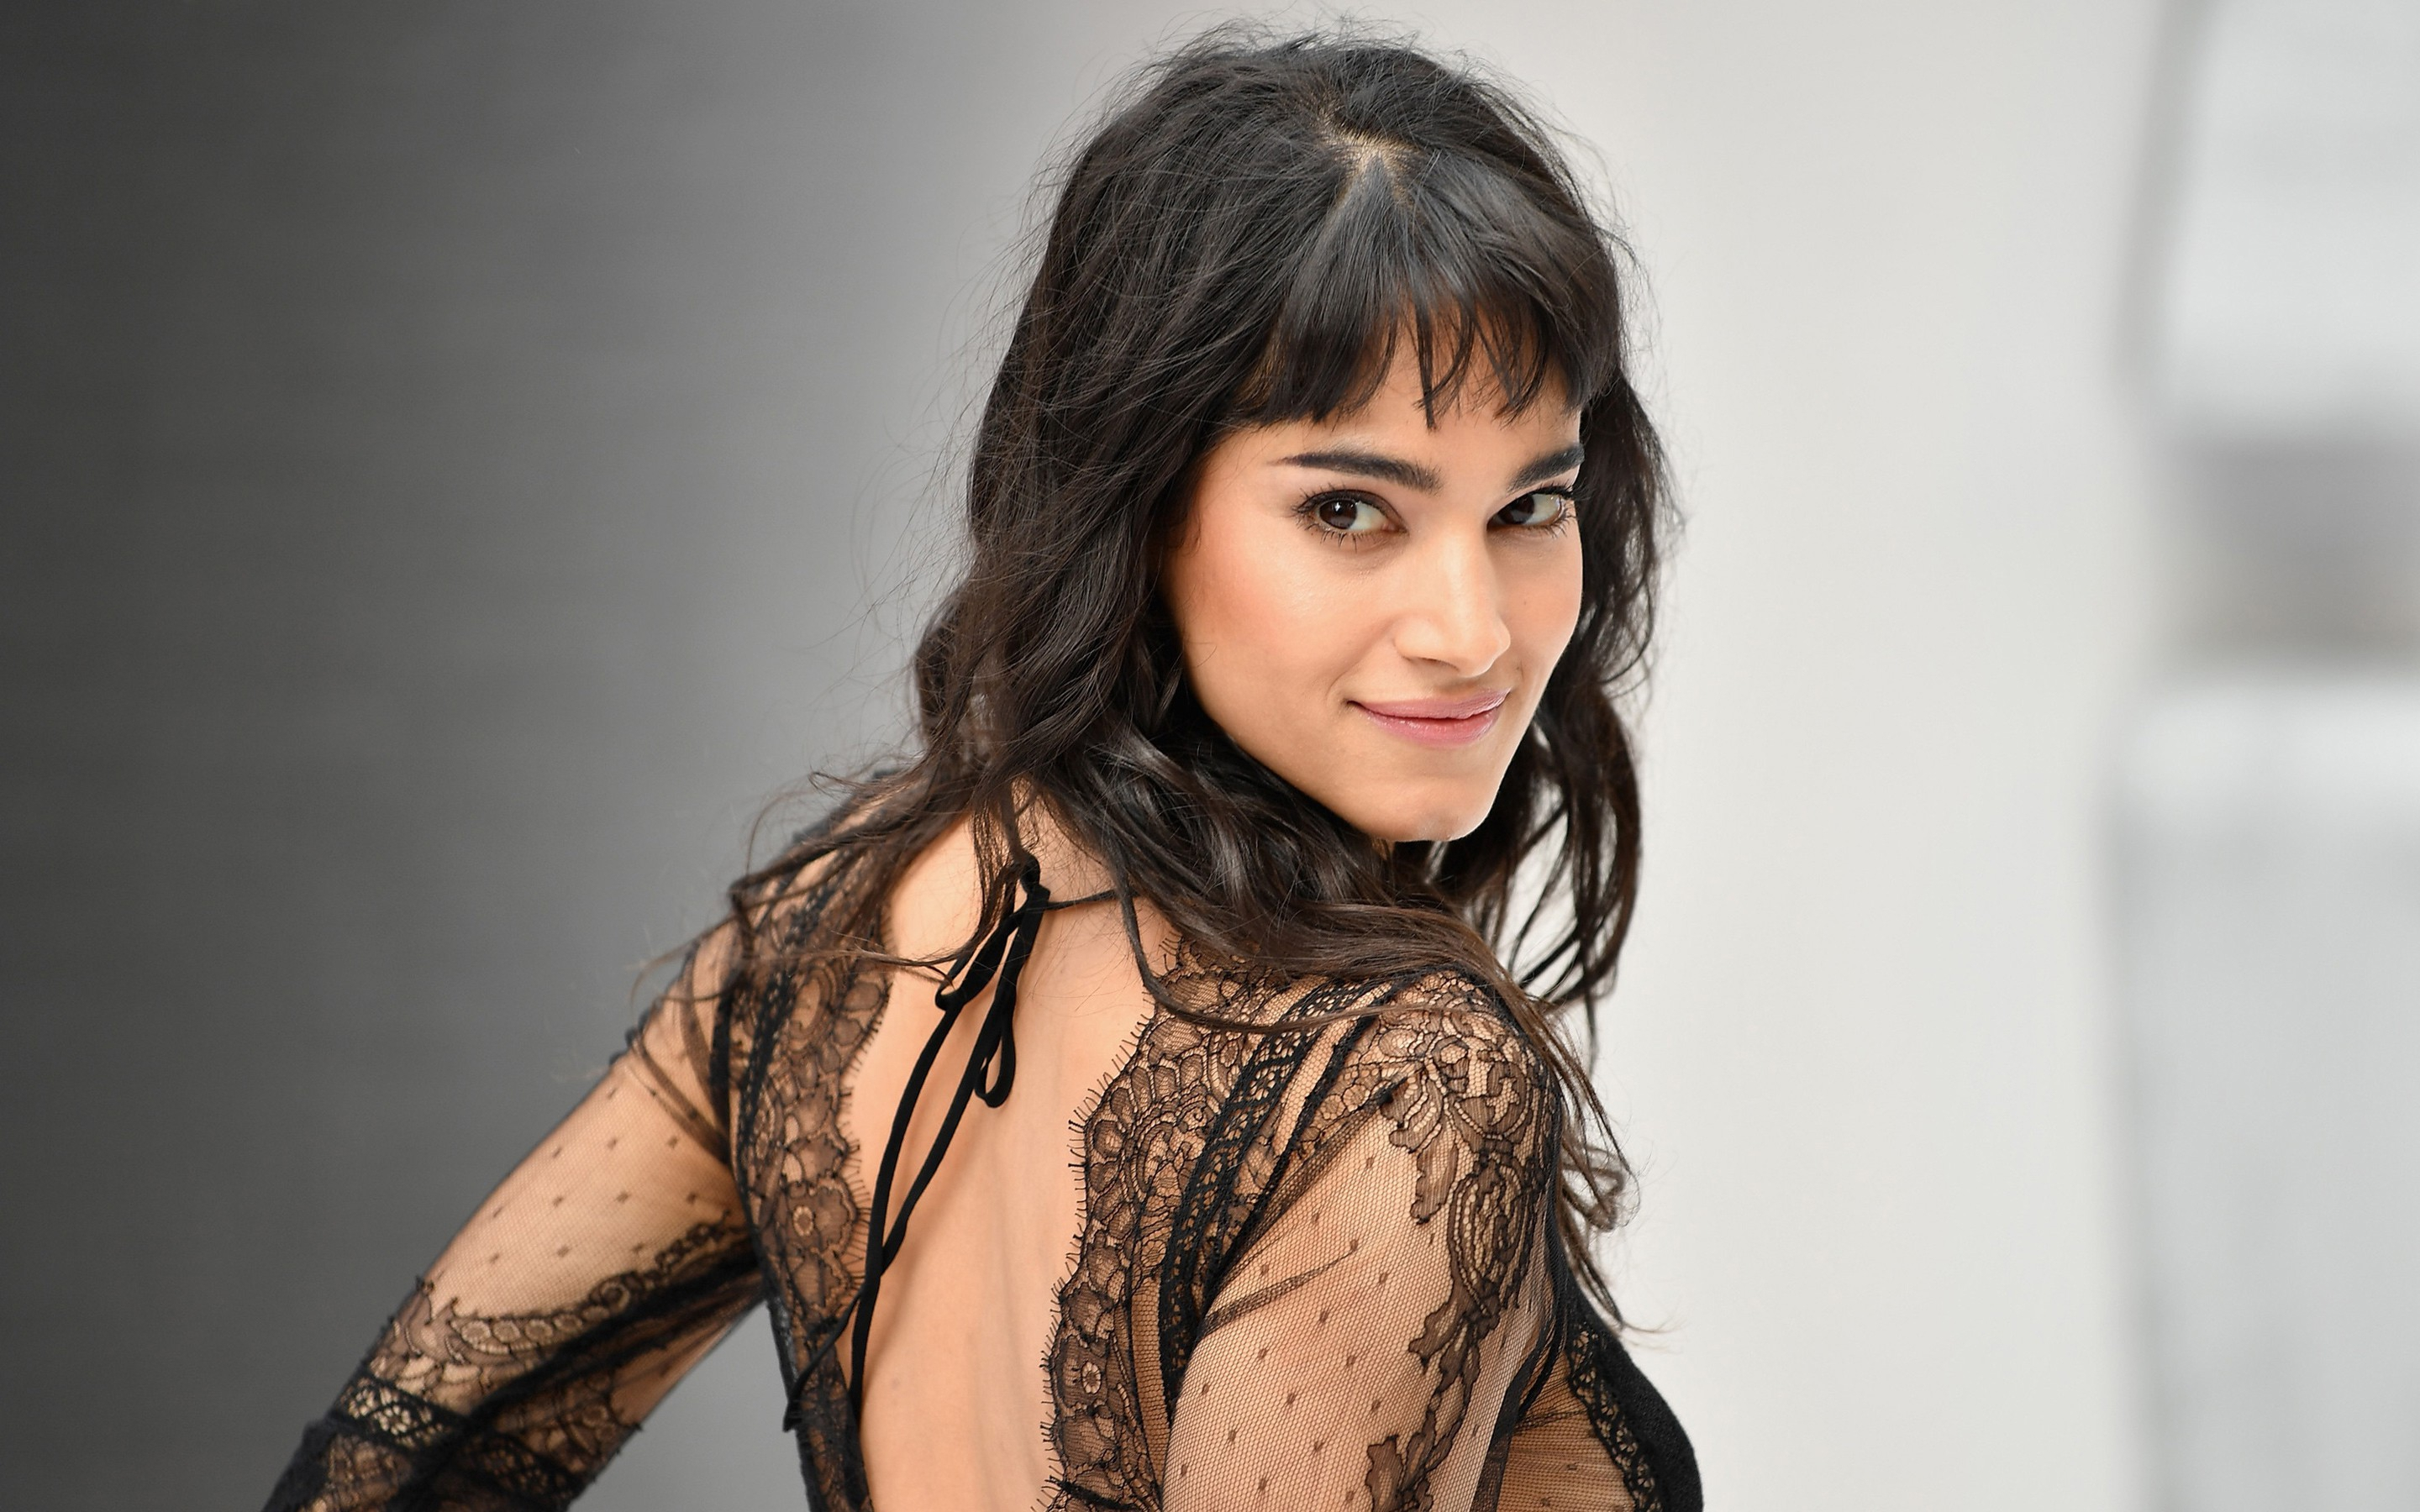 sofia boutella widescreen hd wallpaper 61109